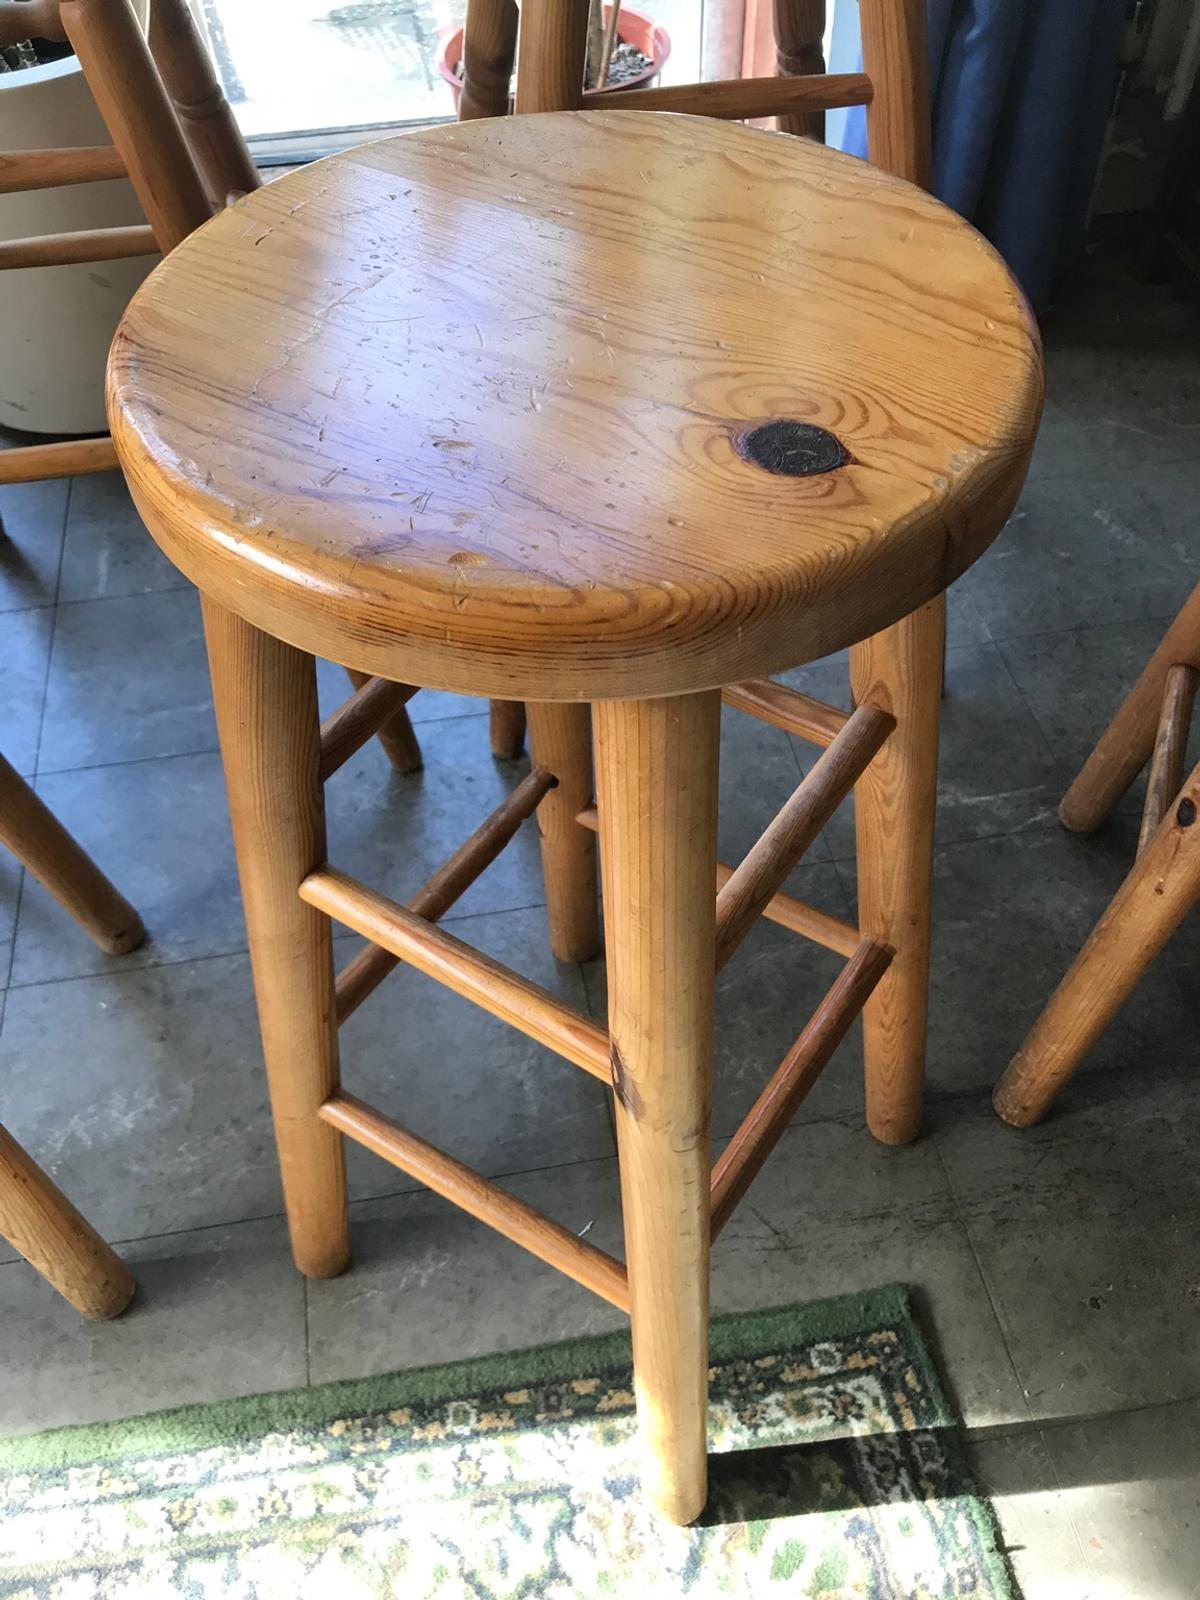 Terrific Solid Pine Breakfast Bar Stools In Kt8 Elmbridge For 75 00 Caraccident5 Cool Chair Designs And Ideas Caraccident5Info